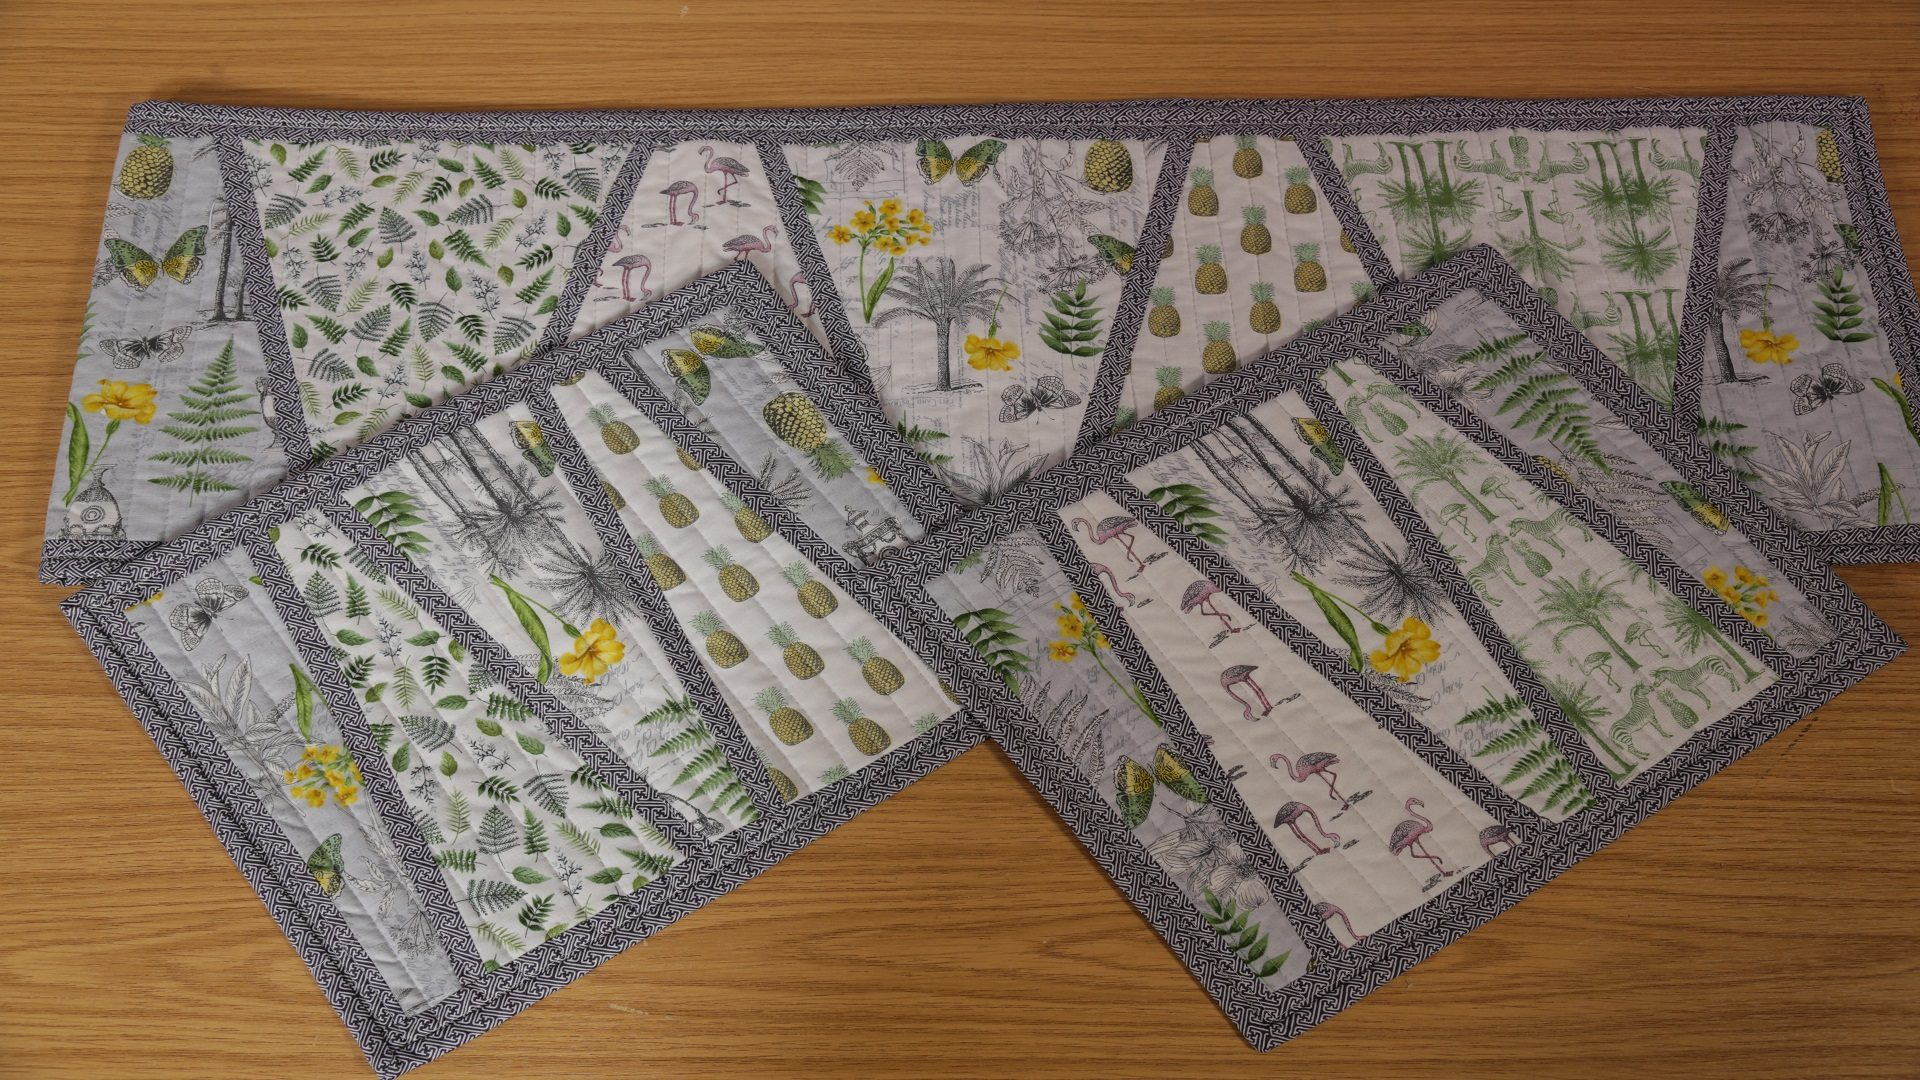 Fern Table Runner with Valerie Nesbitt